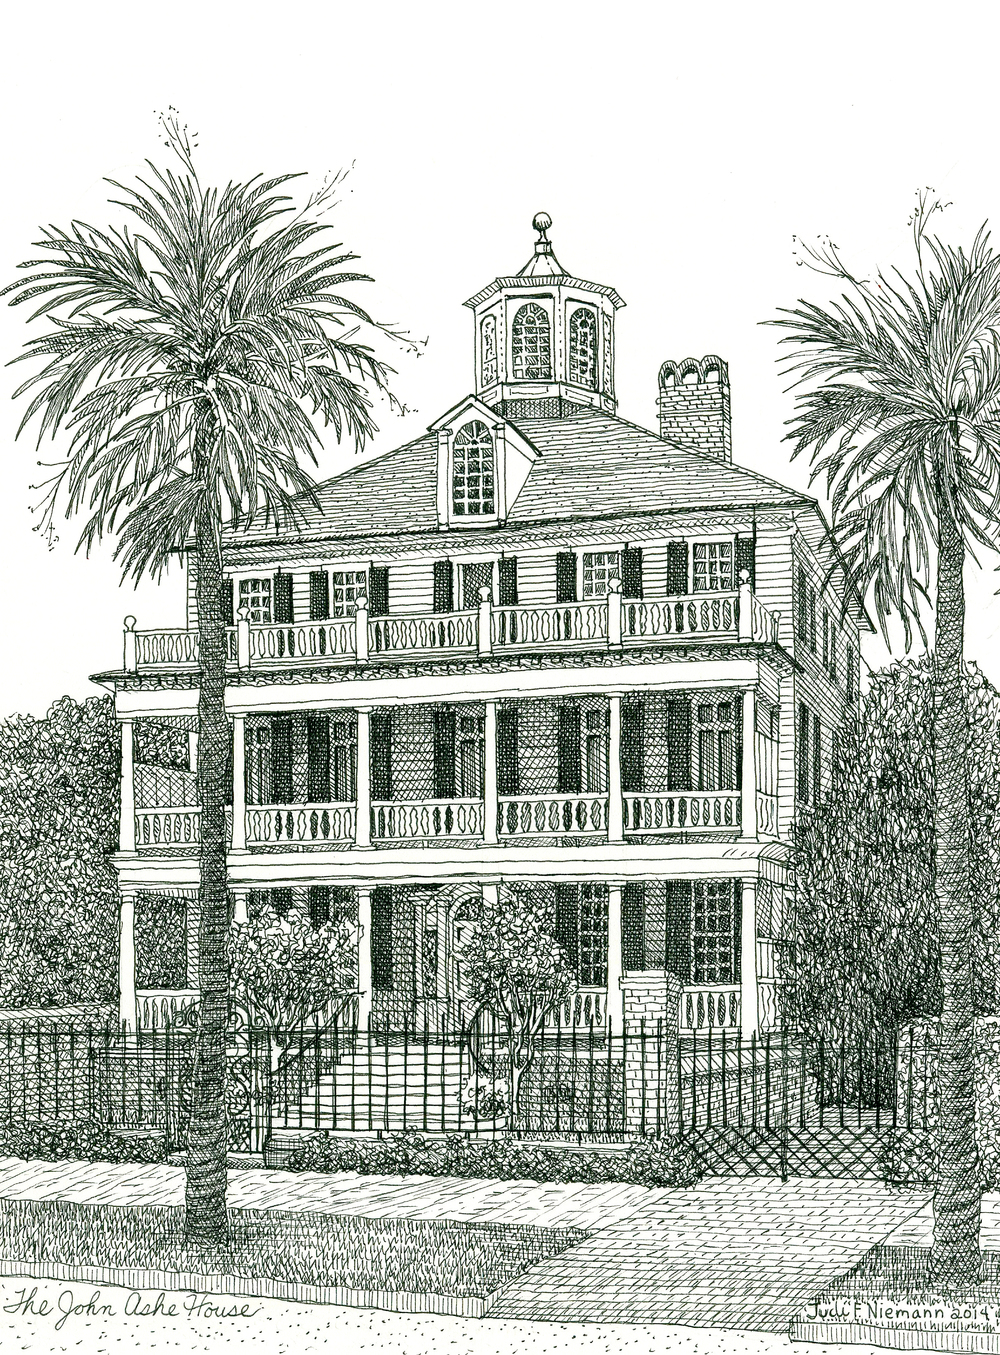 The John Ashe House, Battery row, Charleston, SC